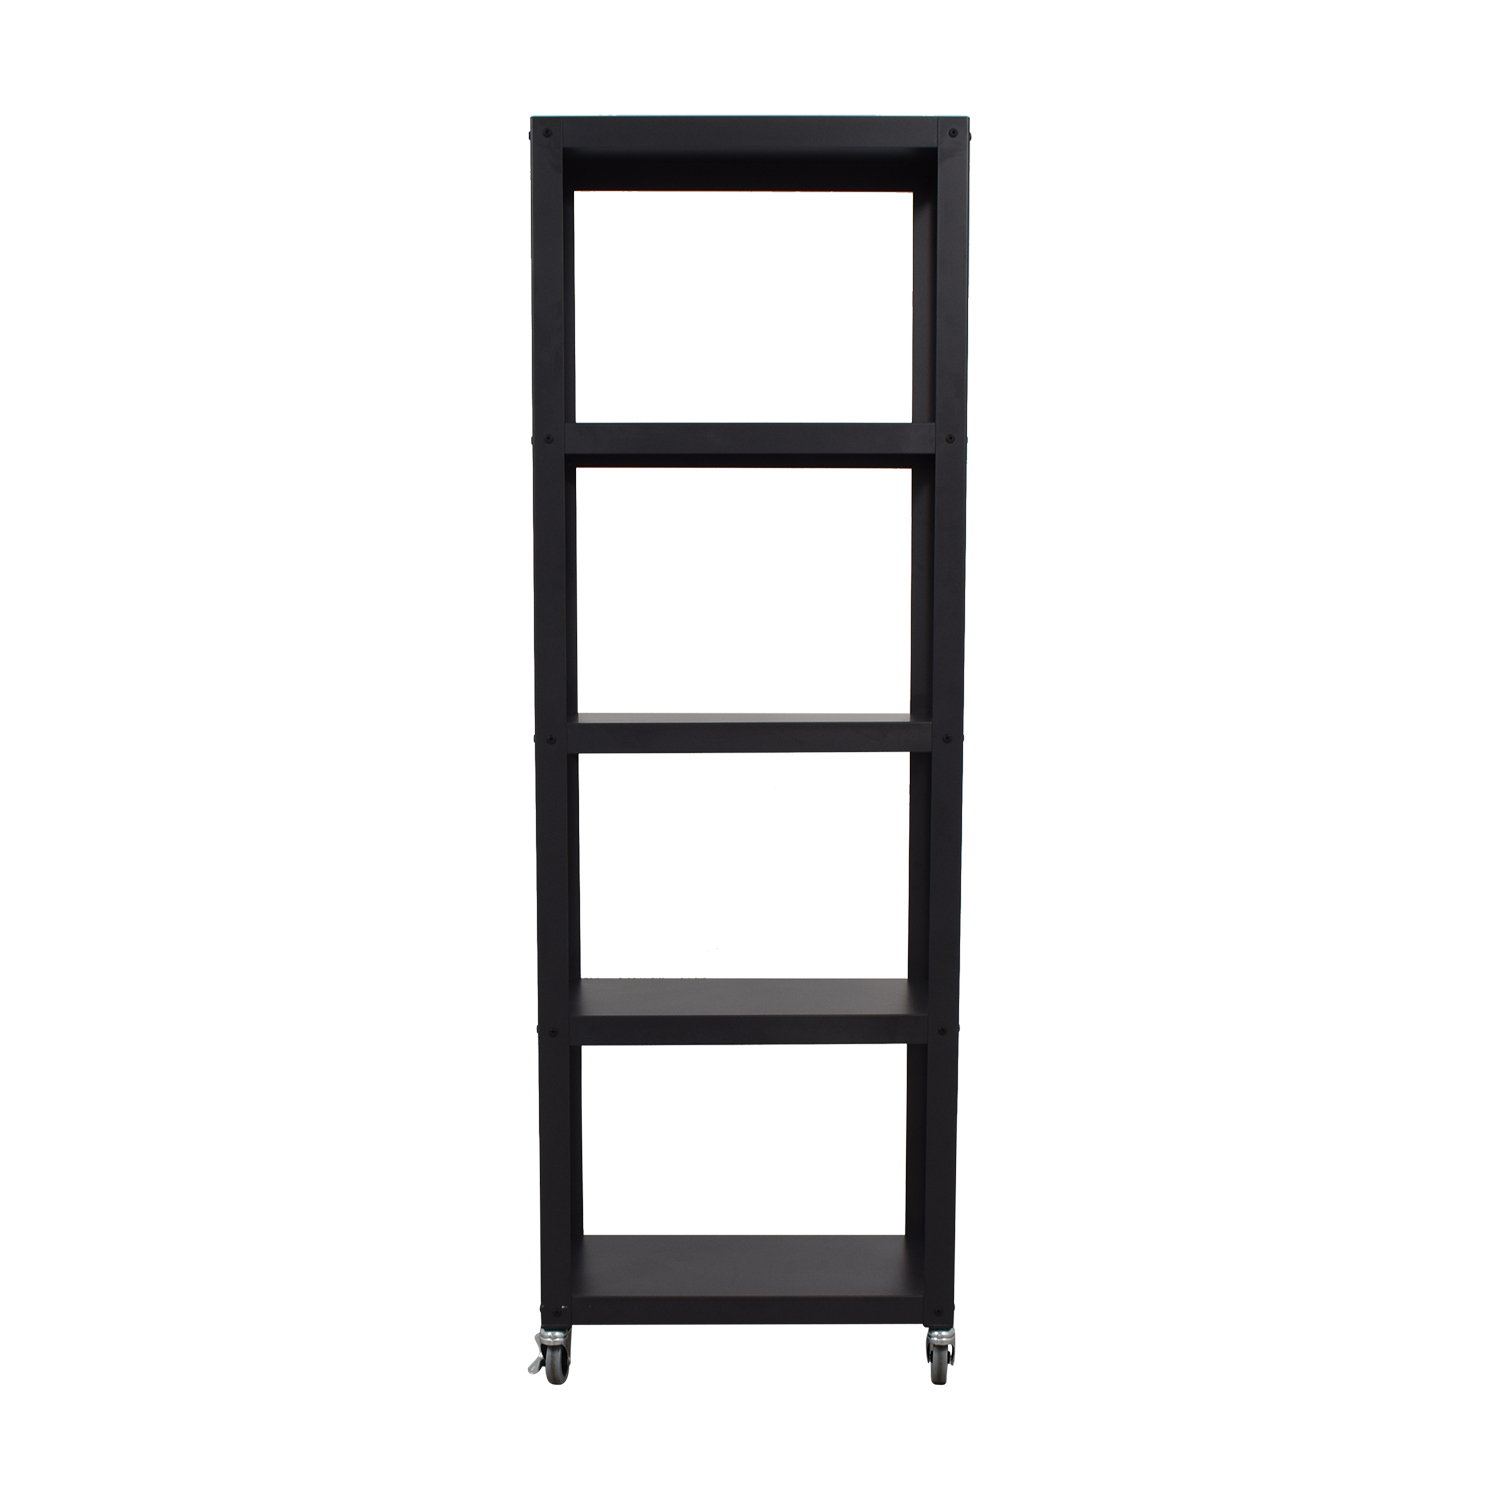 CB2 CB2 Go-Cart Black Five-Shelf Rolling Bookcase used